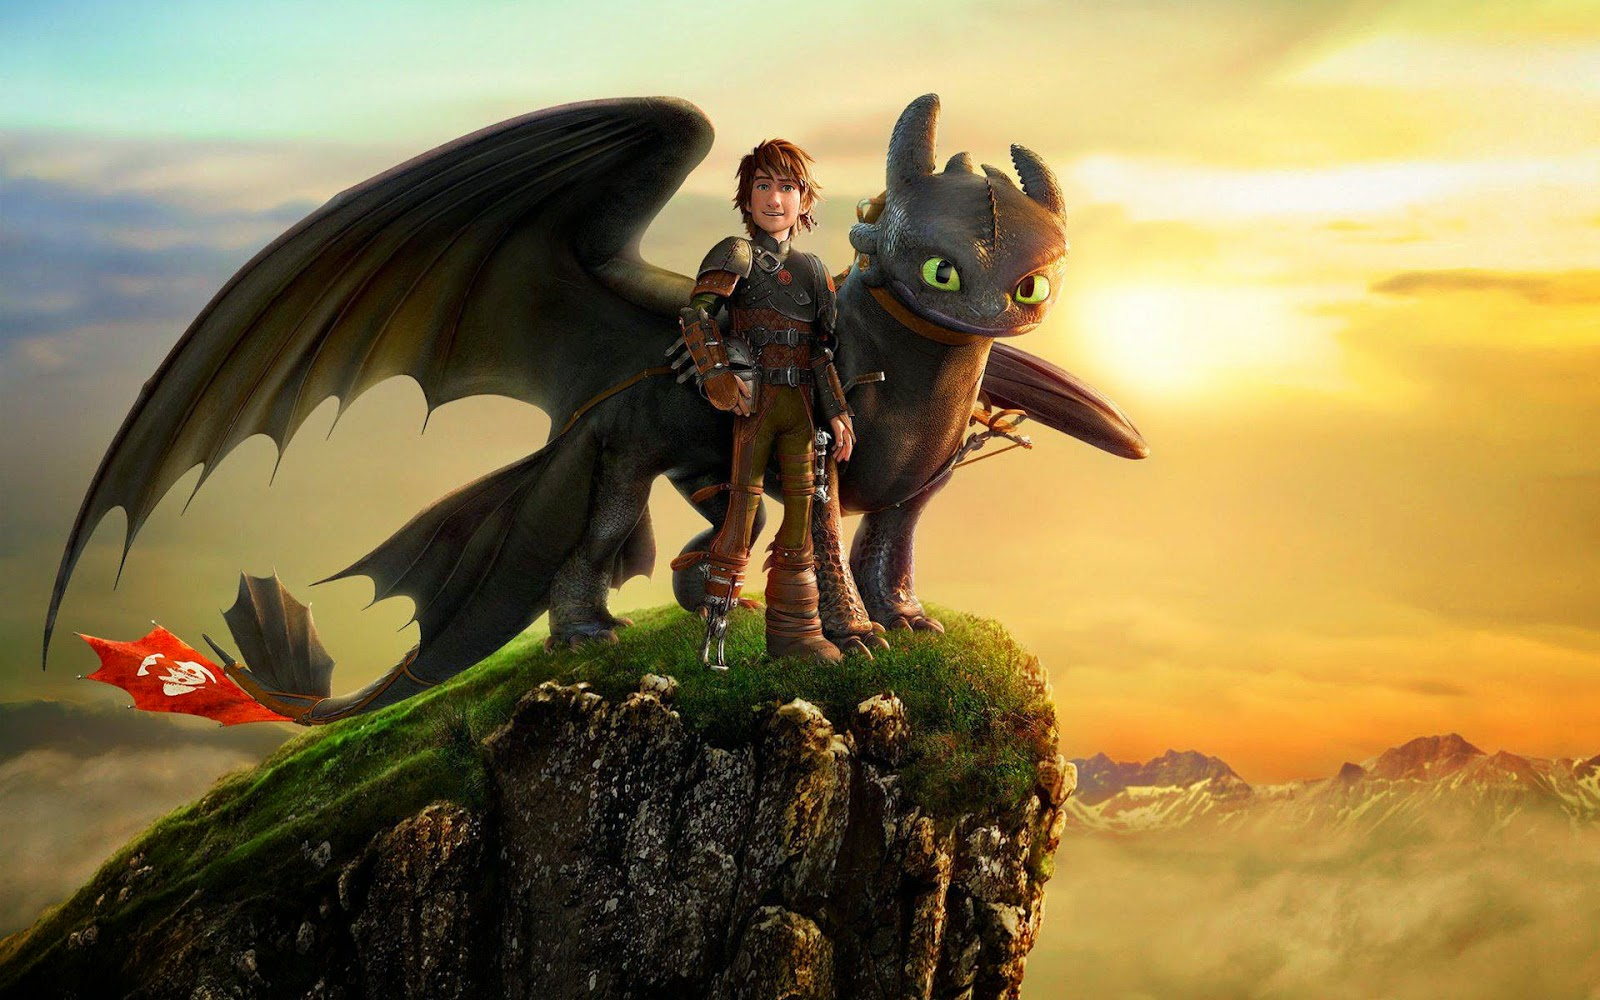 Nonton online how to train your dragon 2 2014 nonton film online nonton online how to train your dragon 2 2014 film subtitle indonesia ccuart Choice Image